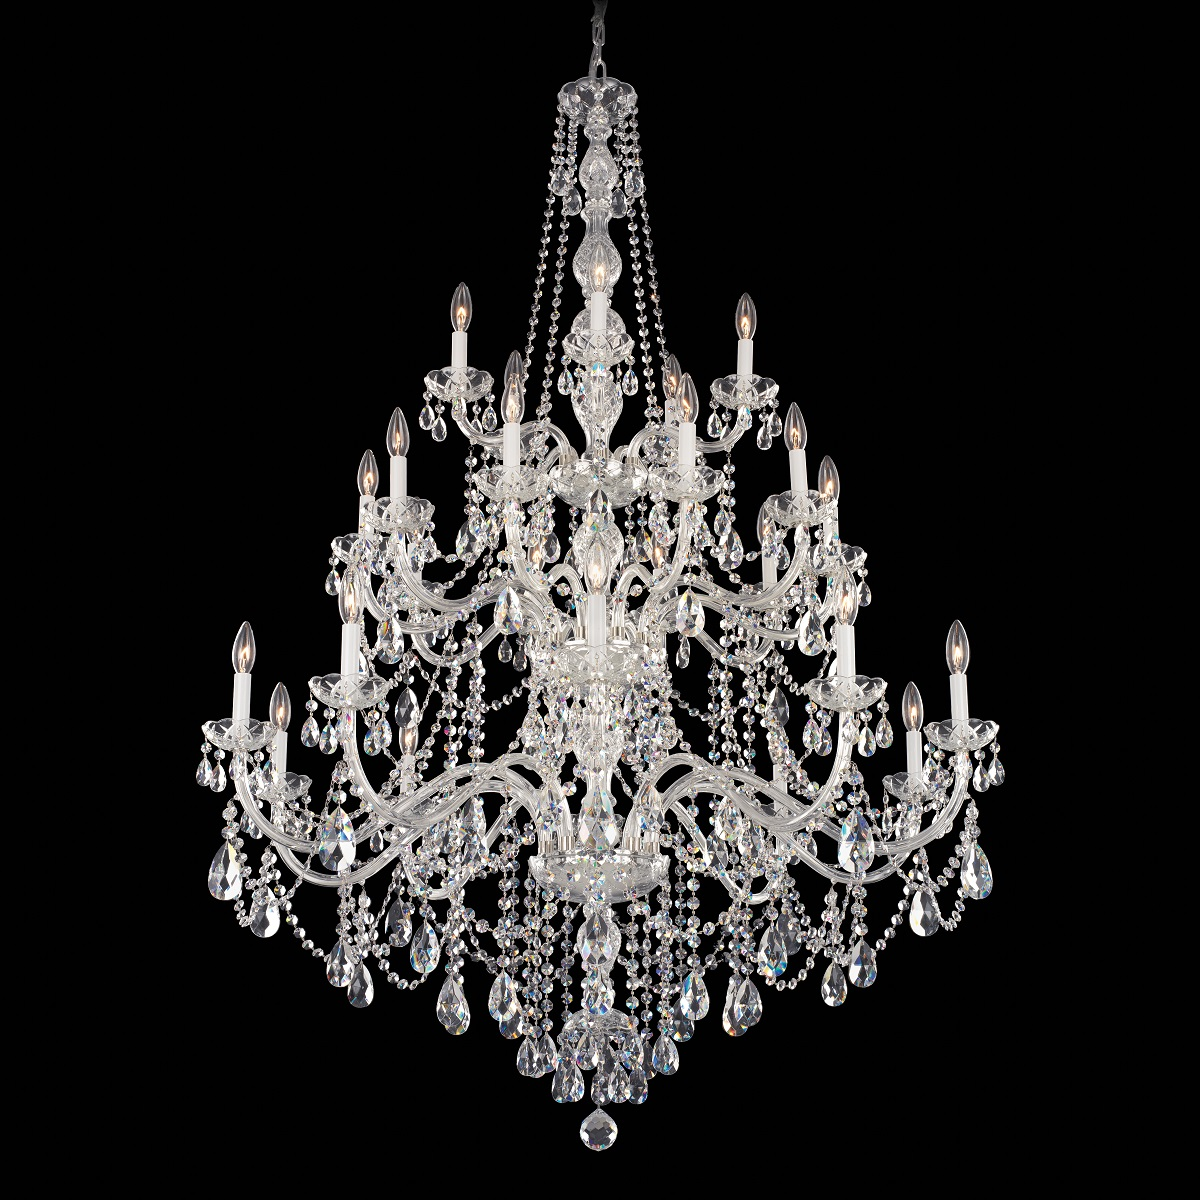 Schonbek Classic Crystal Chandelier Brooklyn,New York by Accentuations Brand